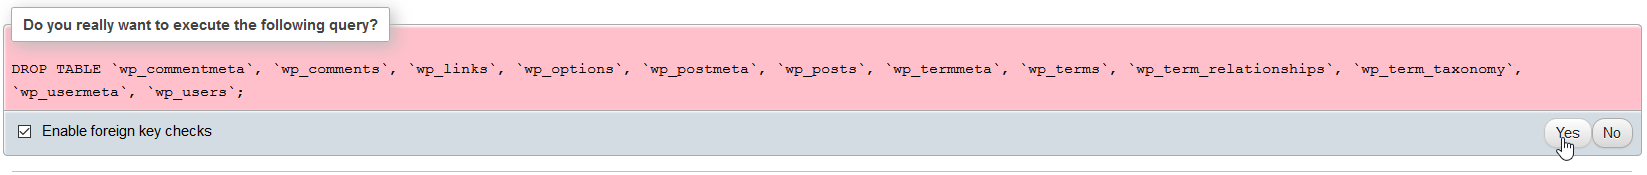 phpMyAdmin - deleting wordPress tables confirm message